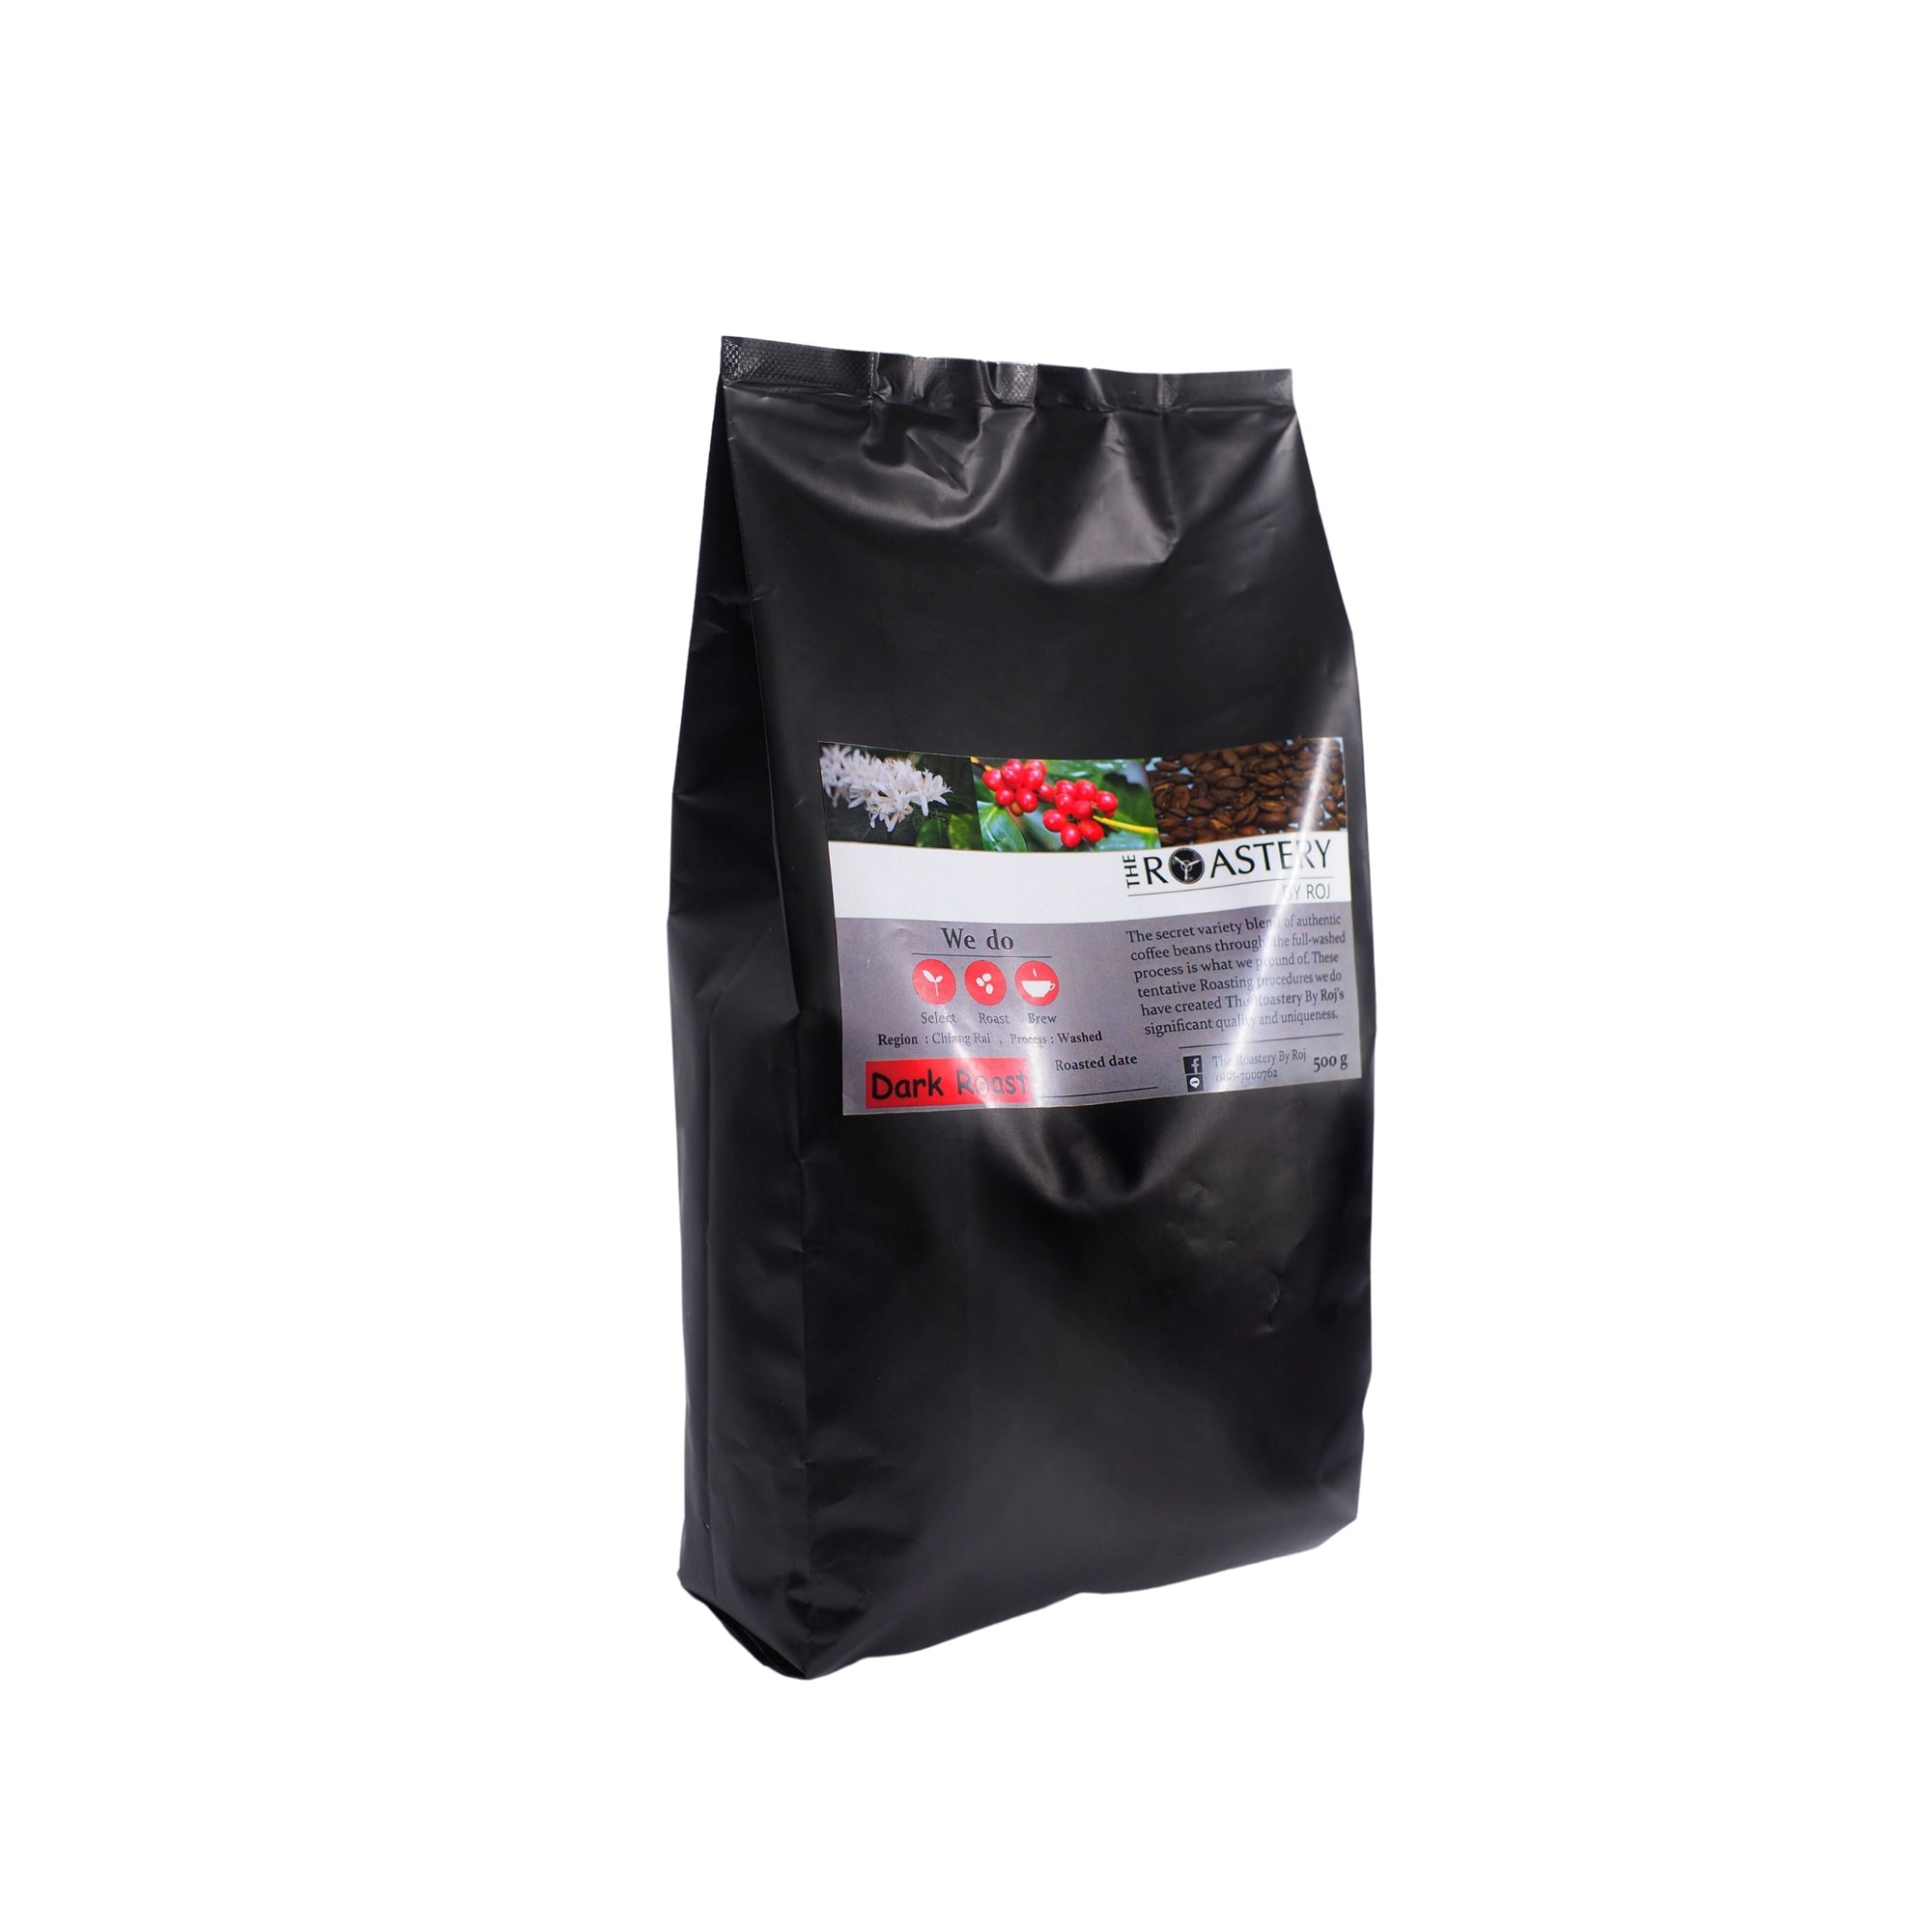 Chiangrai Pangkhon washed Dark Roast 500g